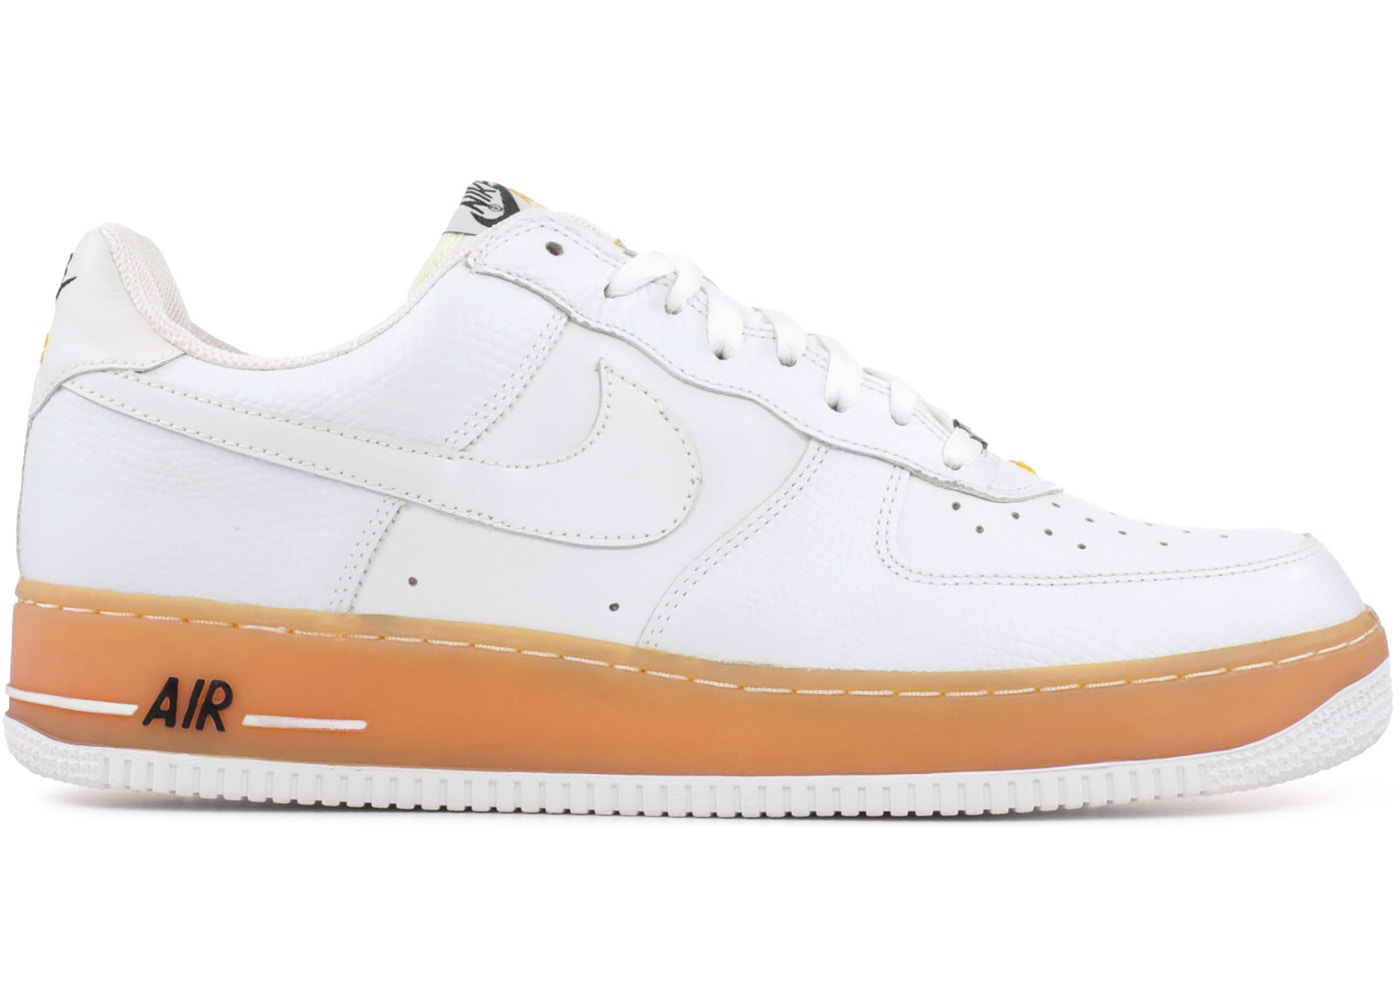 entusiasta Sucio Perdido  Nike Air Force 1 Low JD Sports White Gum Midsole - 306353-902